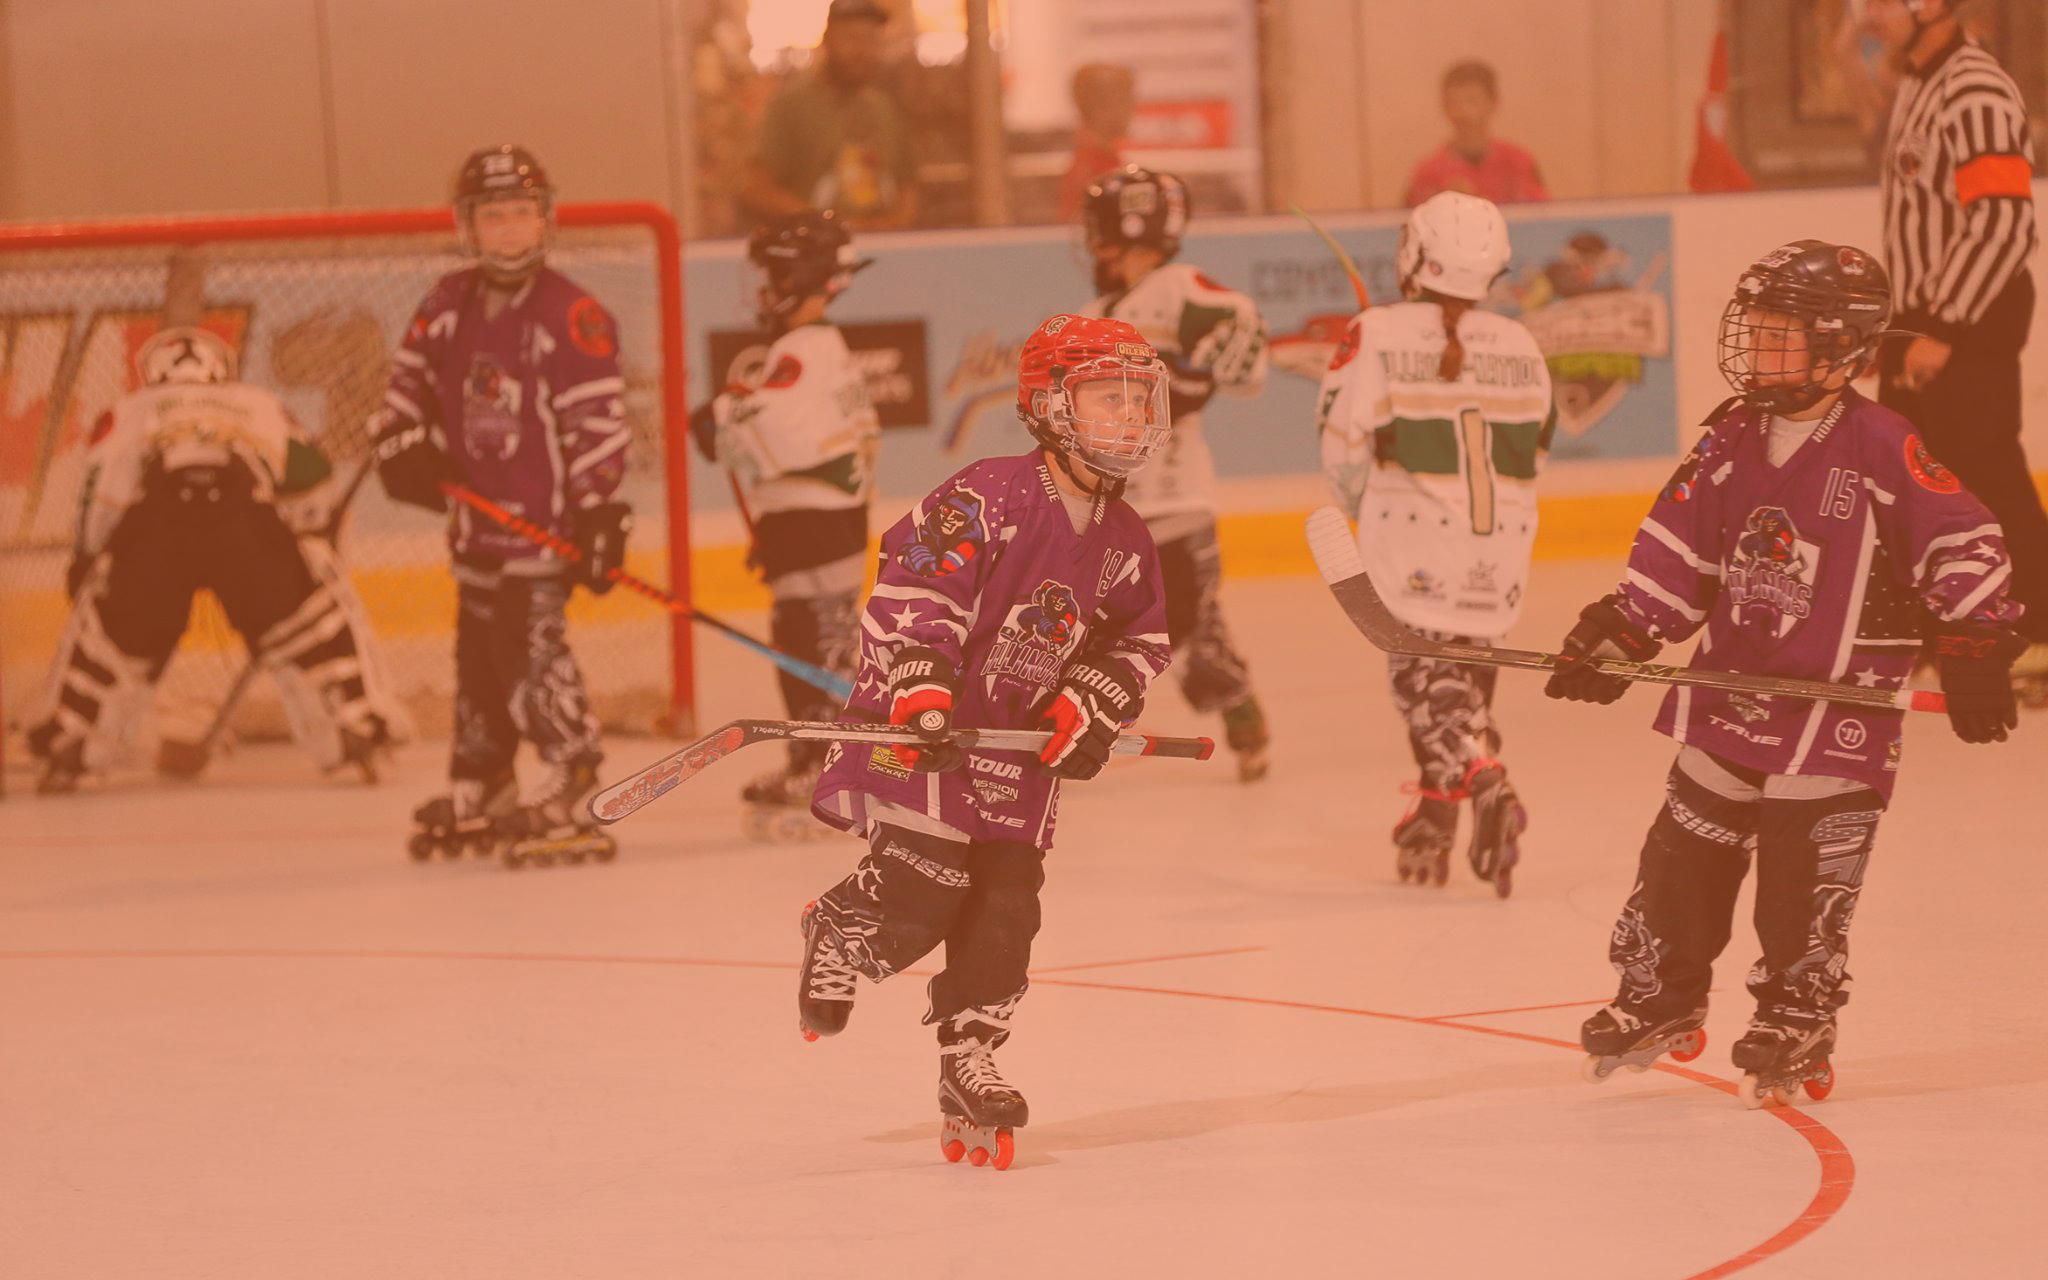 Why Roller? - Roller hockey is a very fast paced and free flowing game - it will turn a good hockey player into a great hockey player and is known to be safer and more enjoyable:)